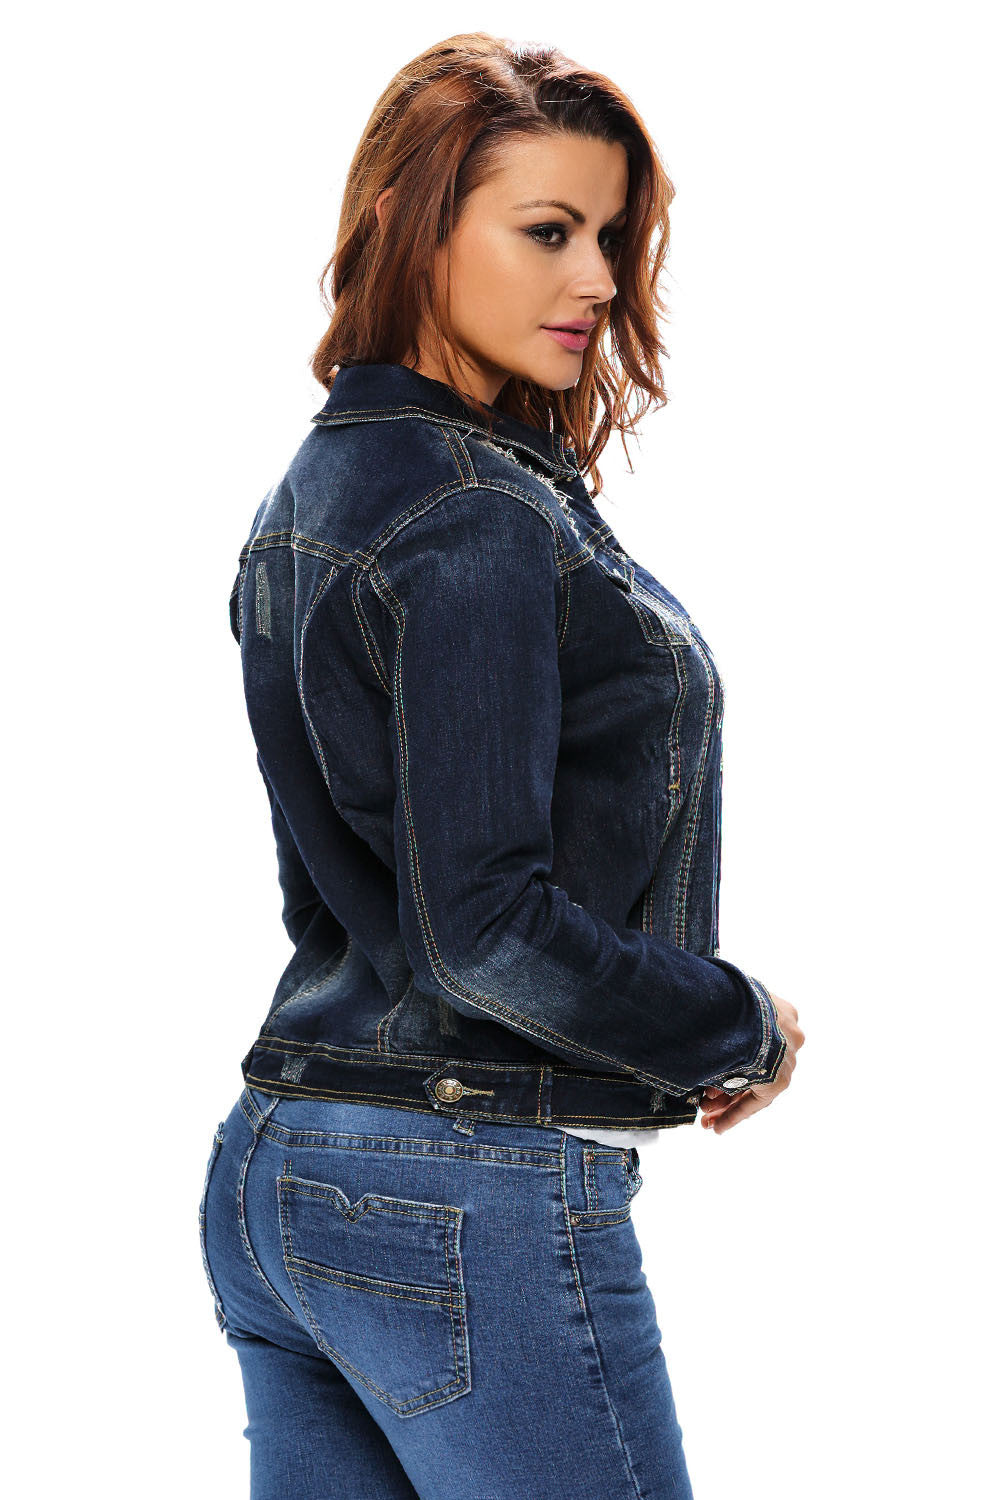 Her Trendy Style Dark Stone Wash Women Denim Jacket